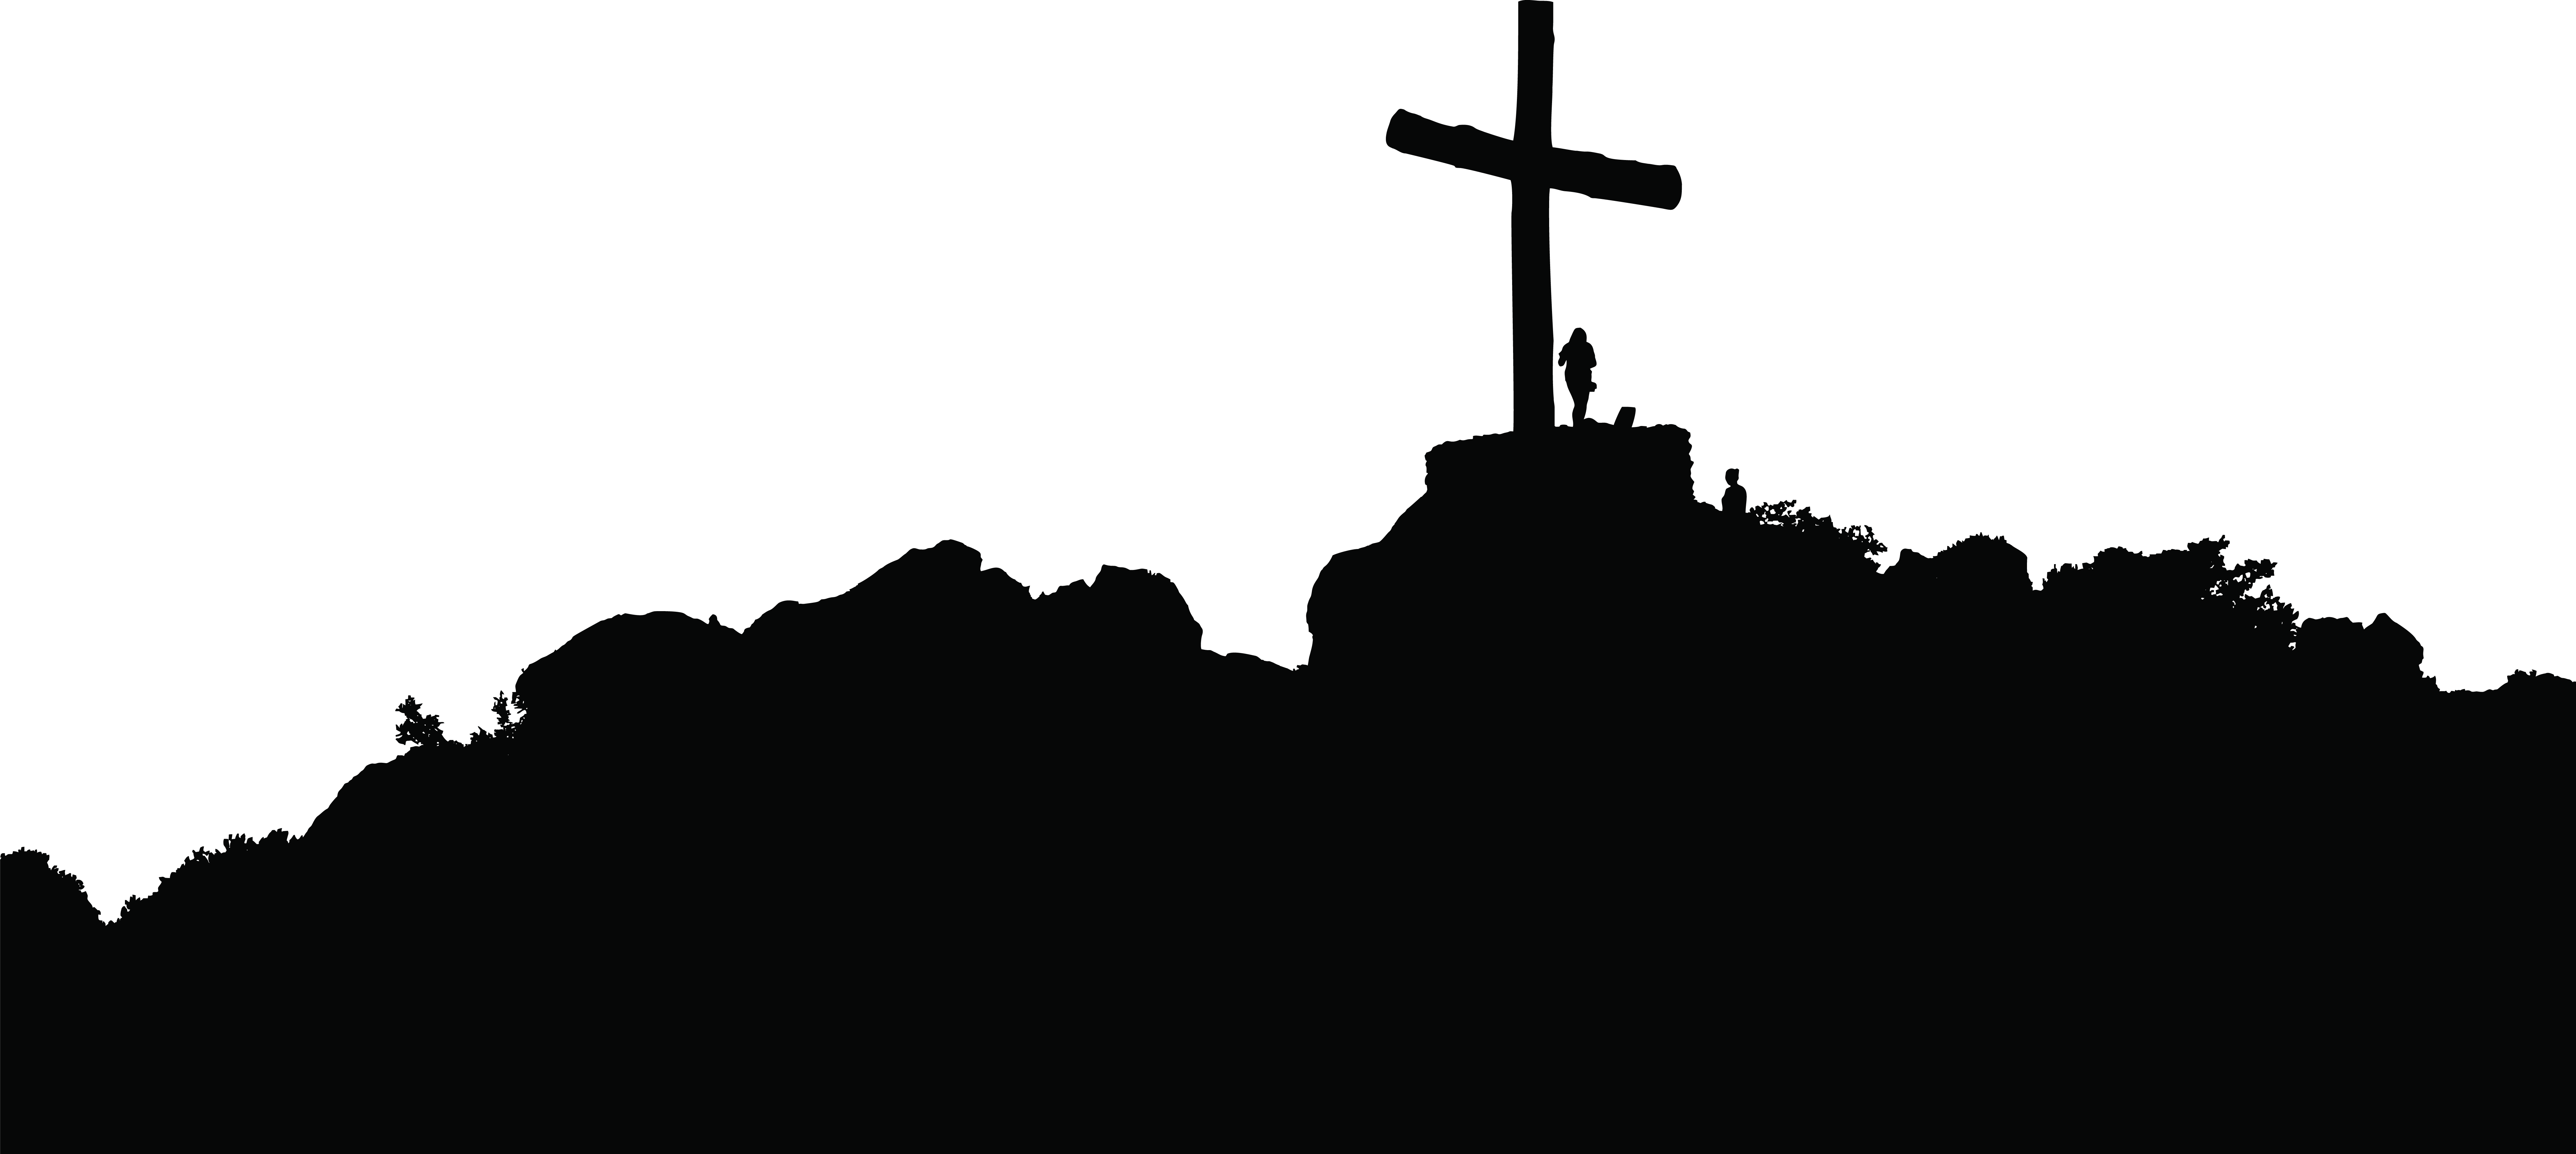 Black cross clipart png png stock Silhouette Christian cross Clip art - hill 8000*3584 transprent Png ... png stock